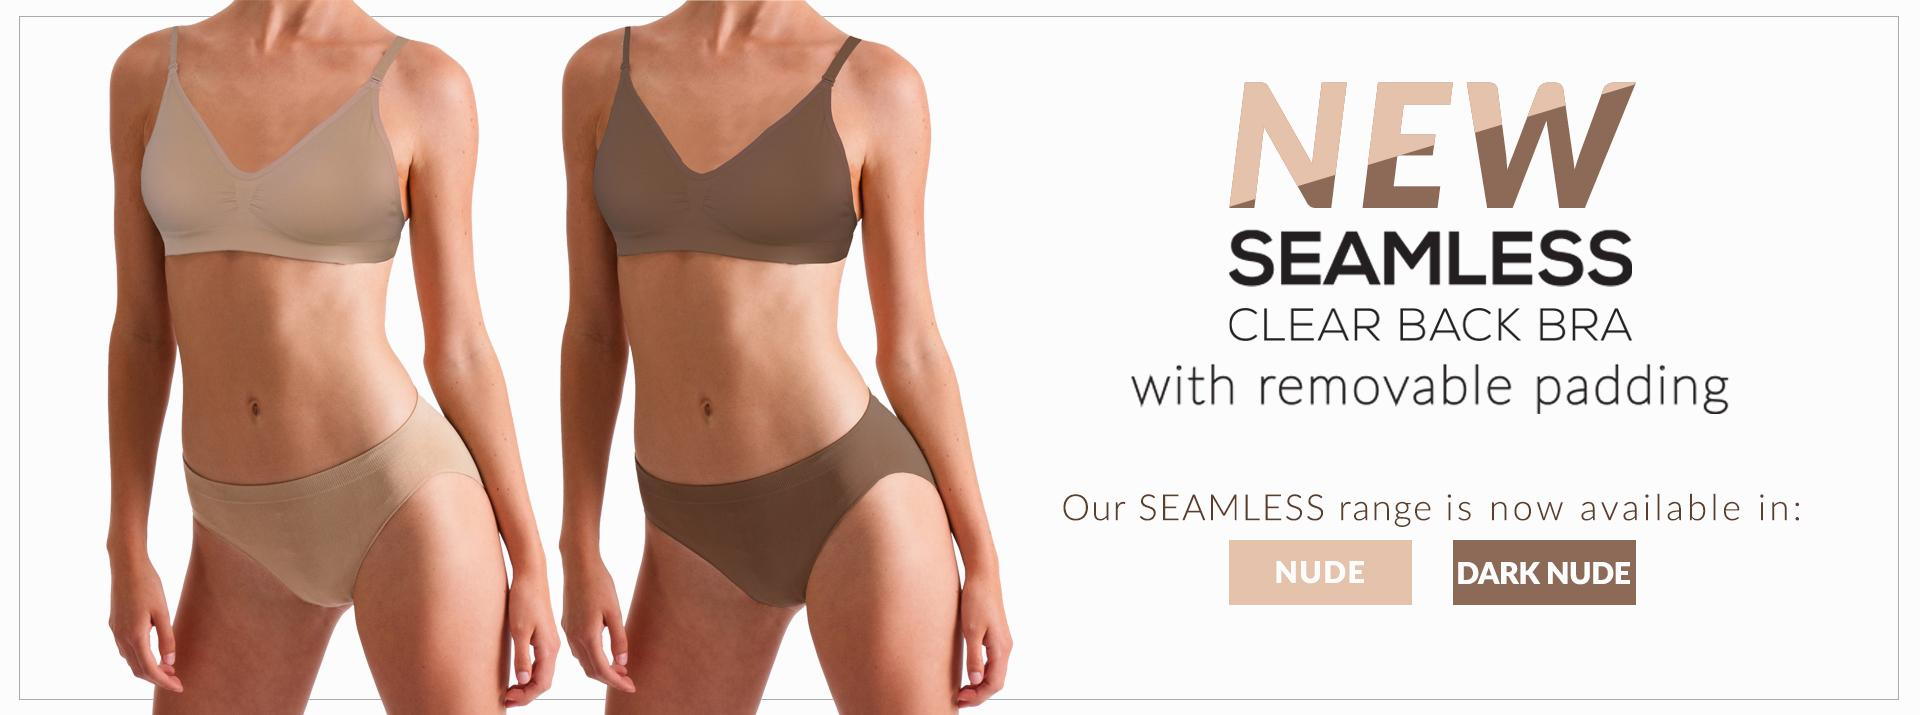 Seamless new bra with padding